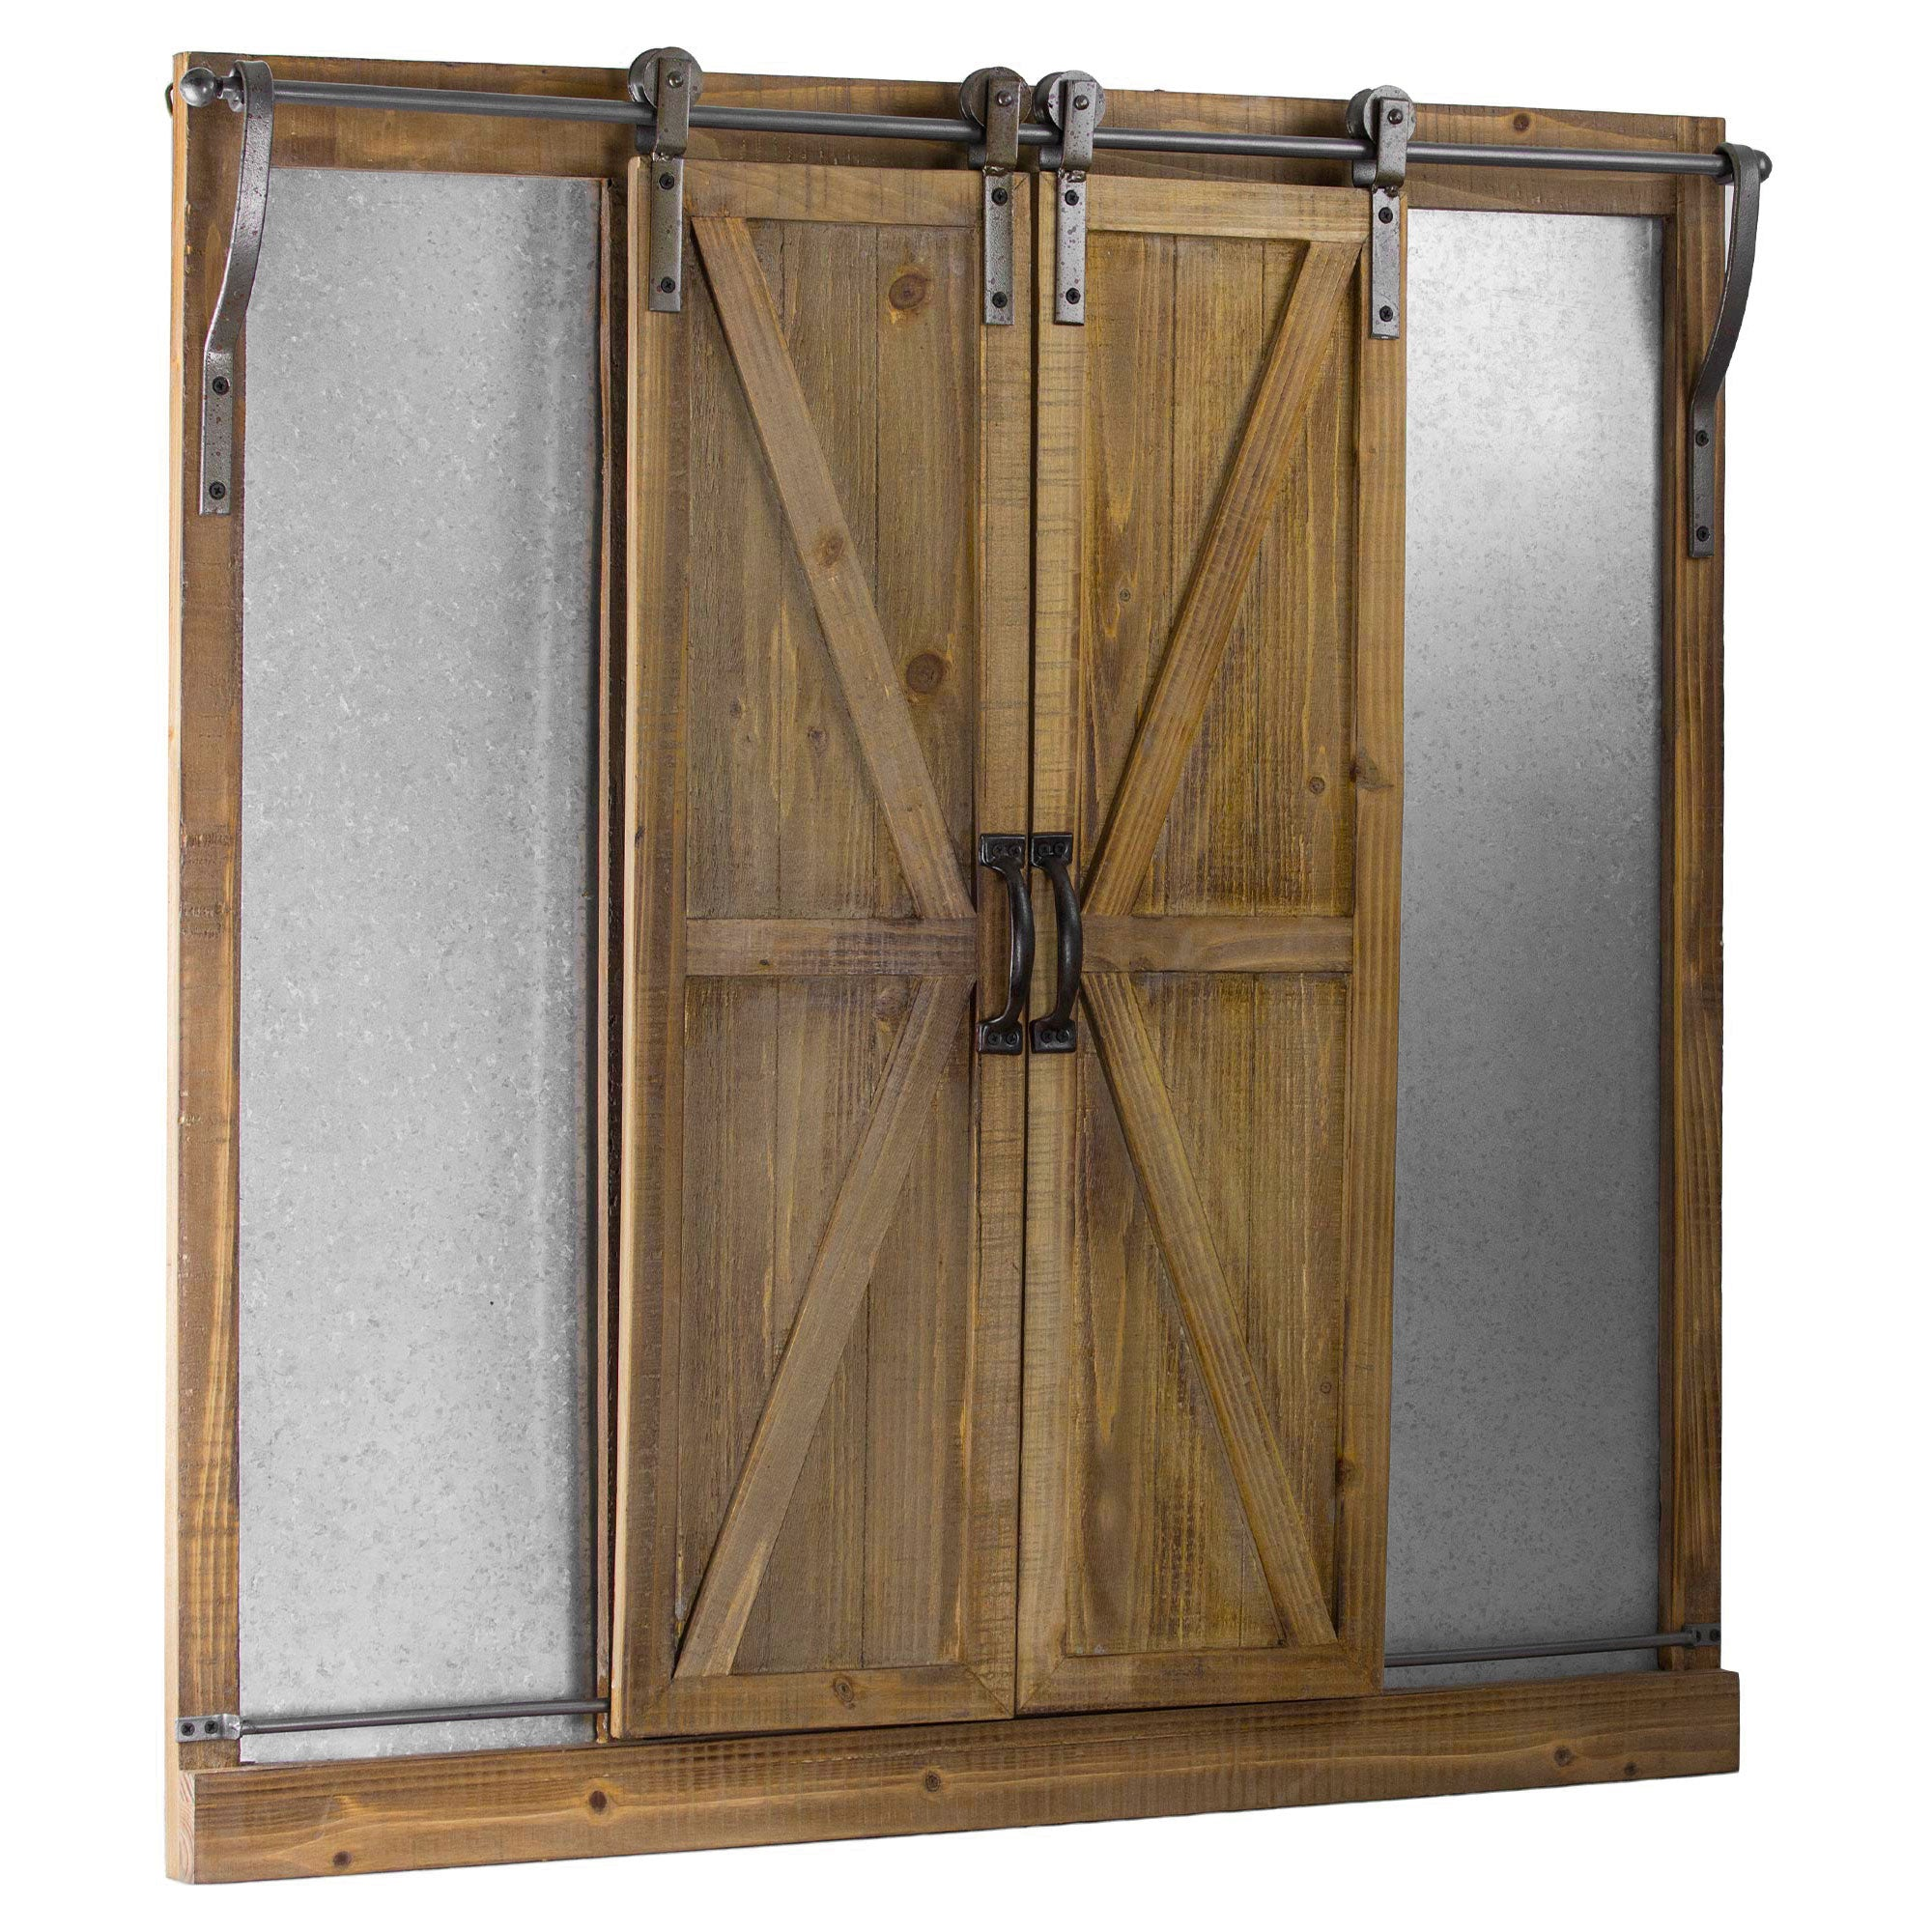 cha white barns barn for door decoration furniture by designs doors chas interior exterior